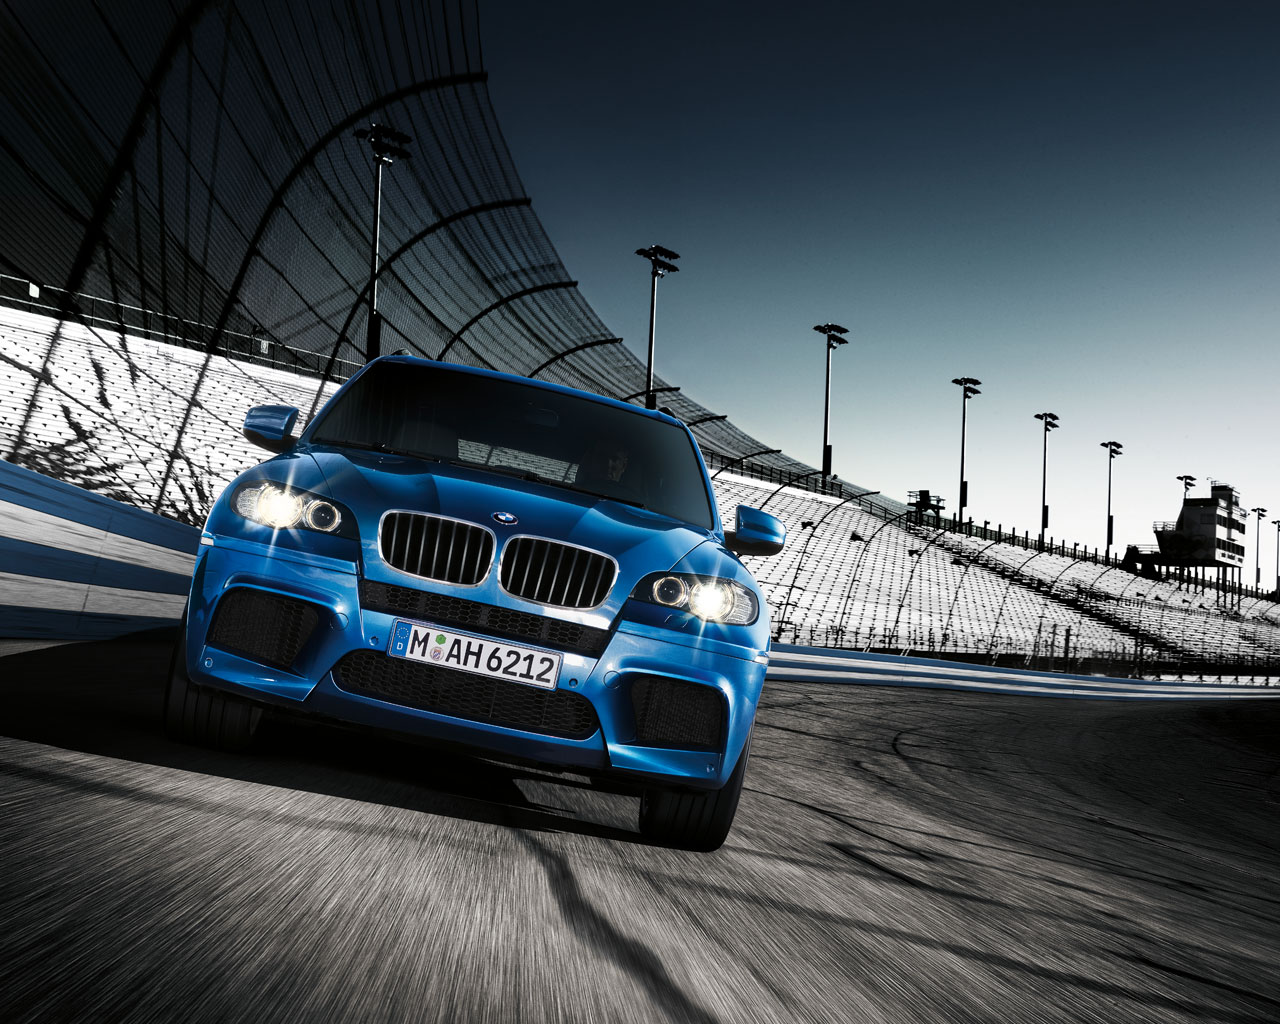 Bmw x5 wallpaper 2009 |Clickandseeworld is all about Funny ...